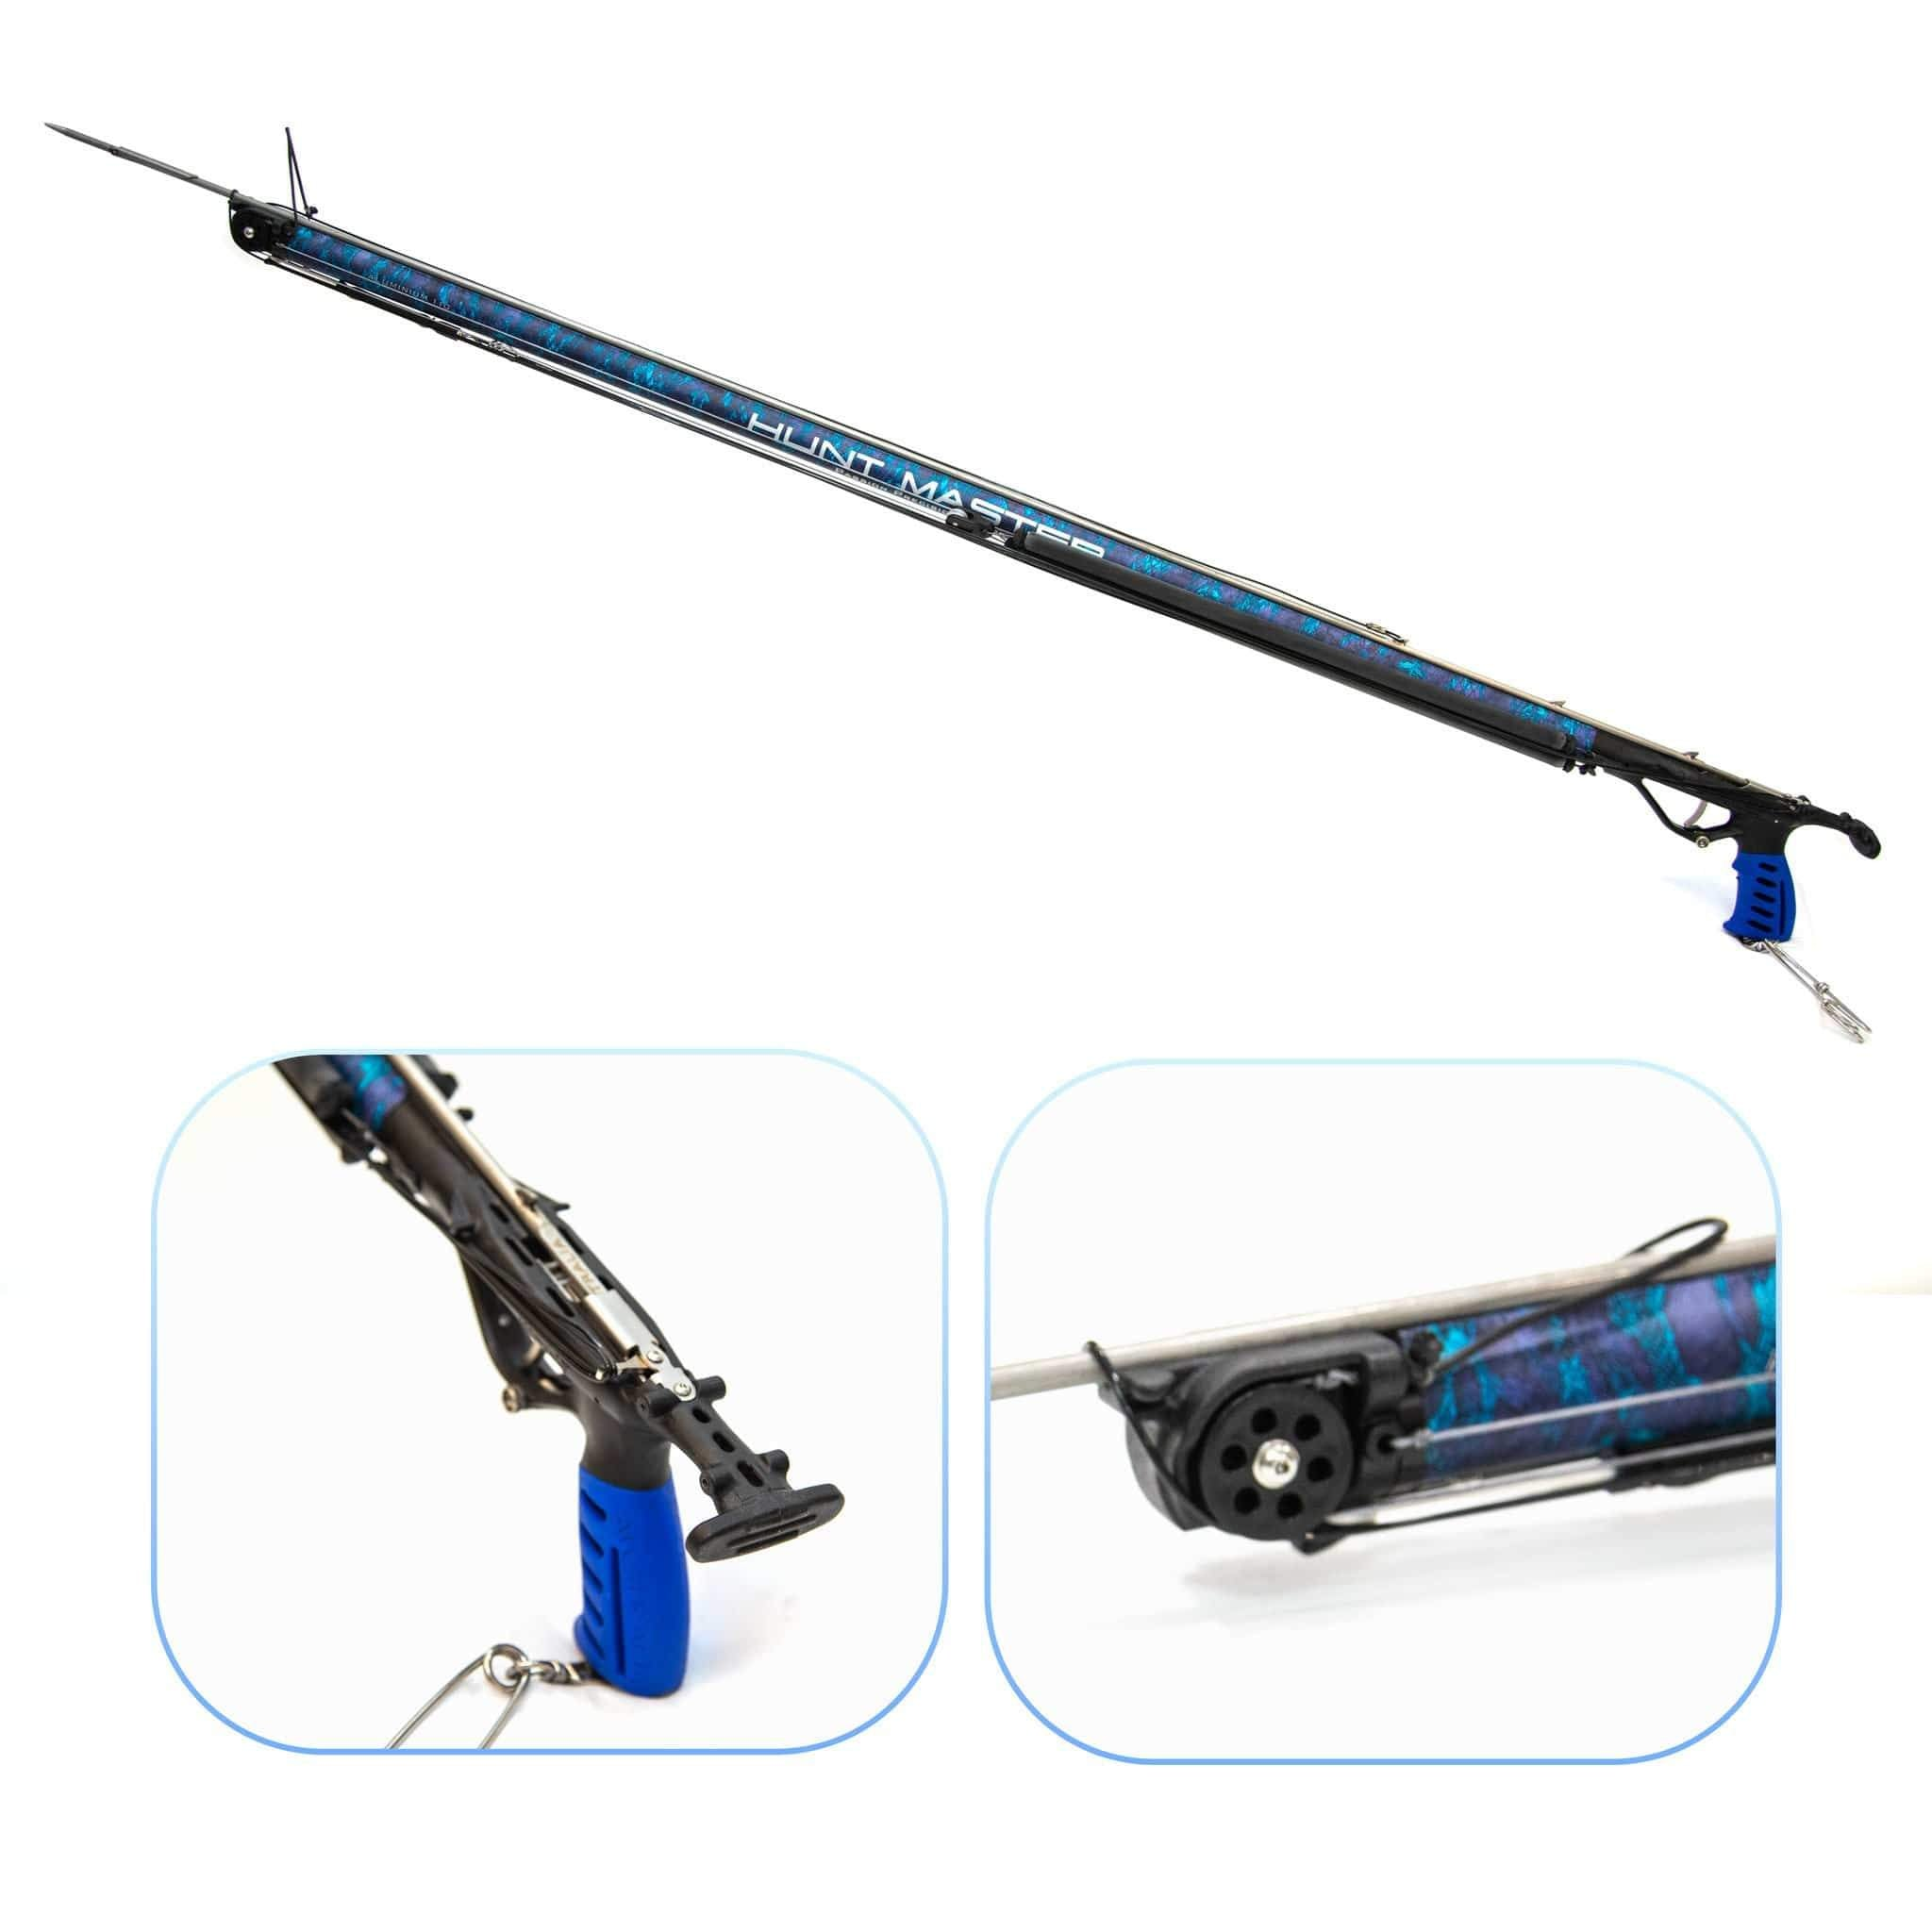 HuntMaster (Coming Soon) Wigun Aluminium Invert Roller Speargun - Camo Series (Blue) 75cm-110cm